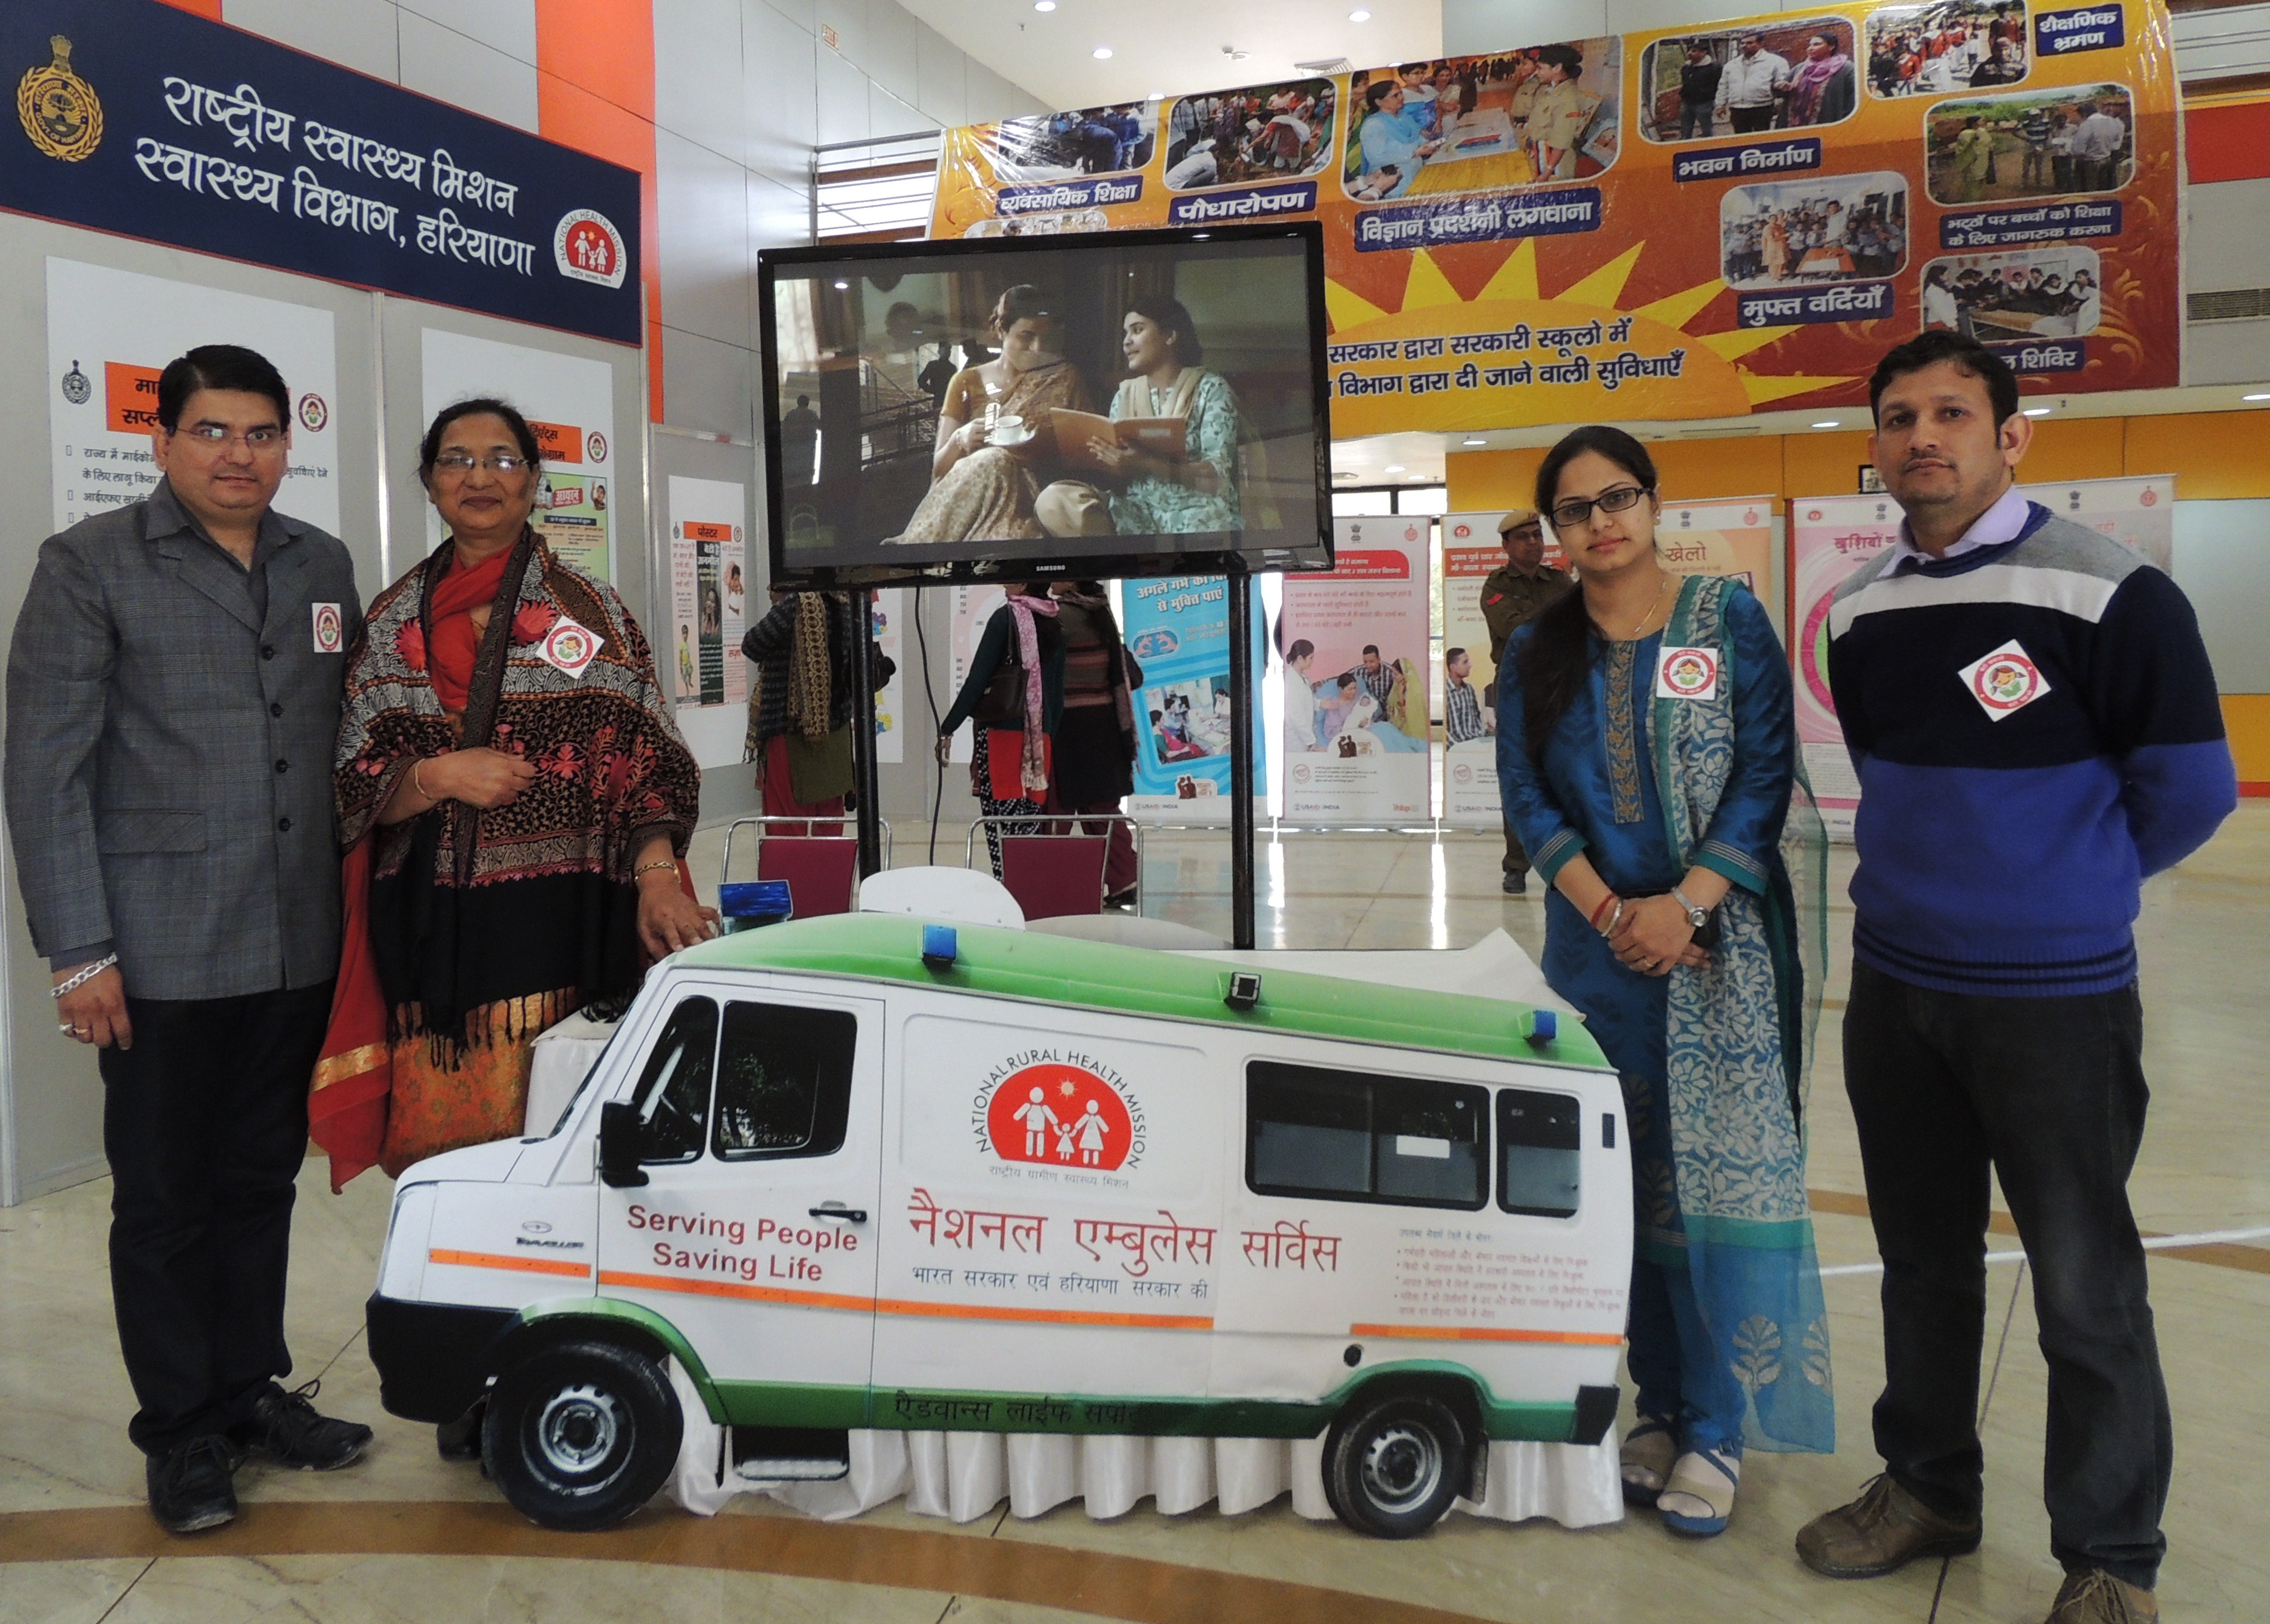 International Women Day  March 8,2015- National Health Mission Exhibition